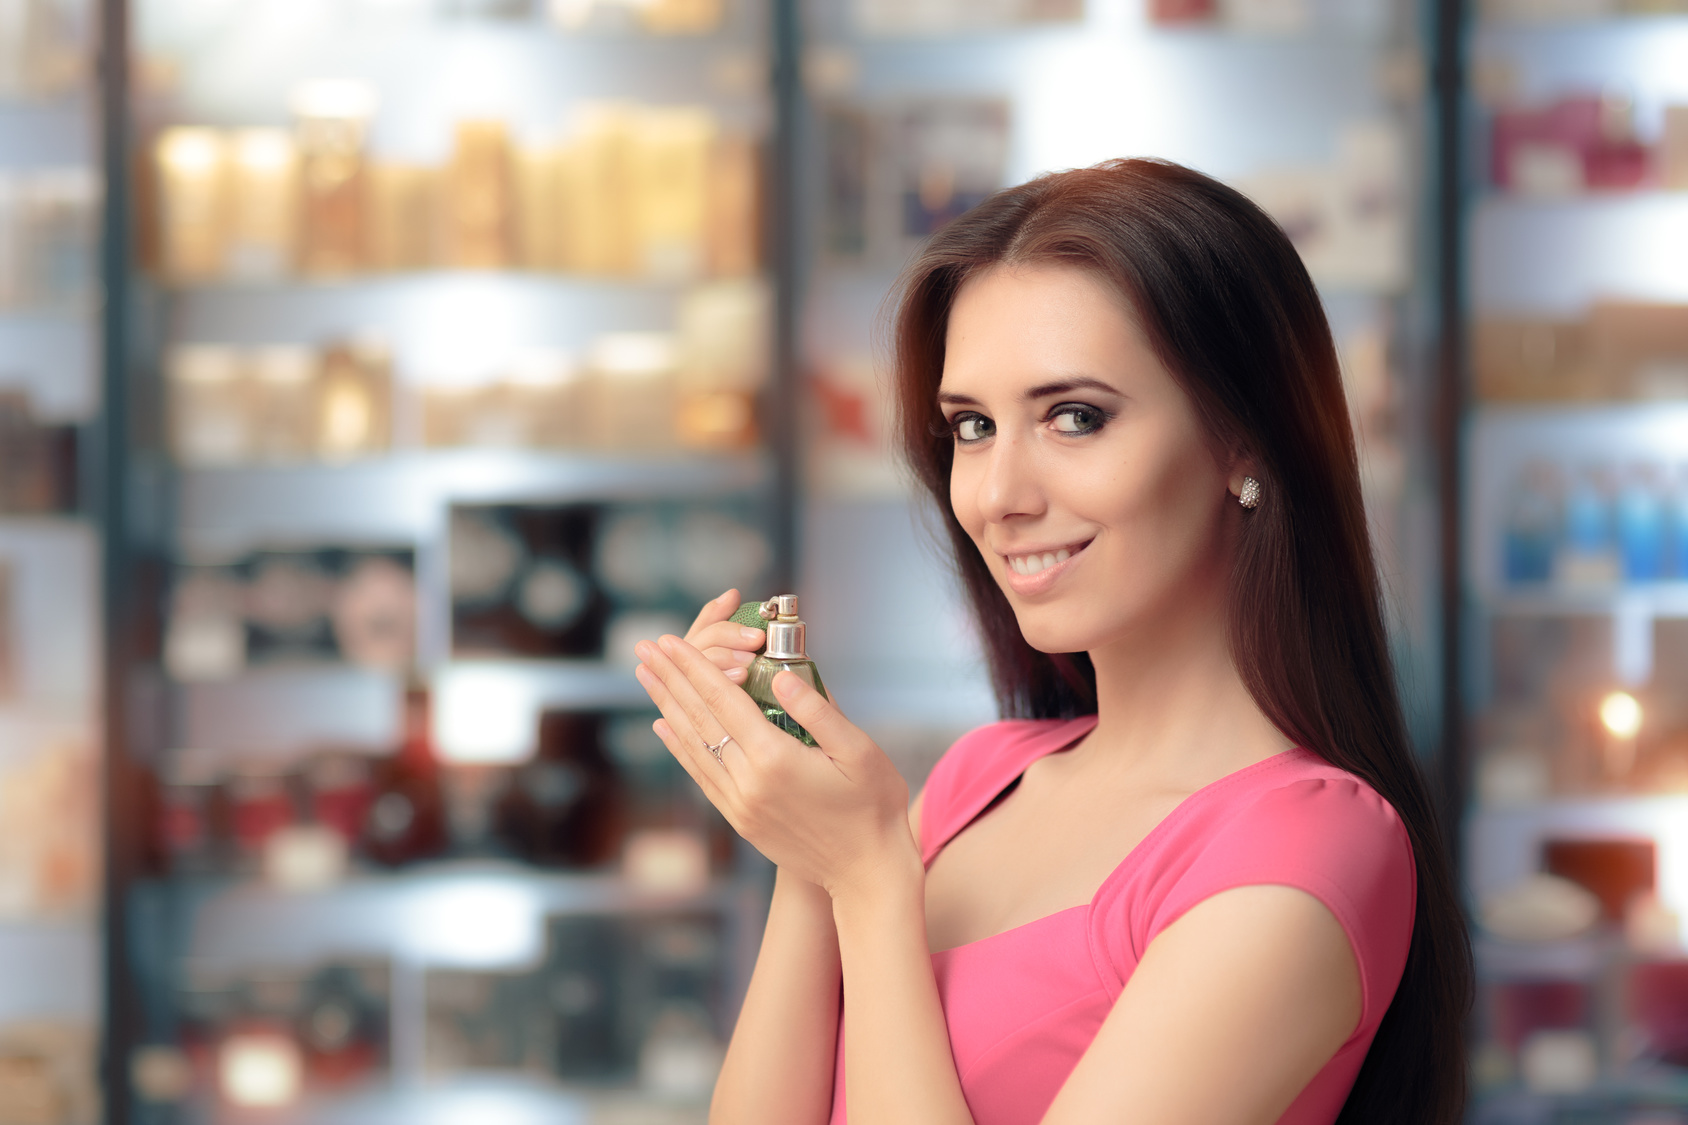 Smiling Woman Holding Retro Perfume Bottle